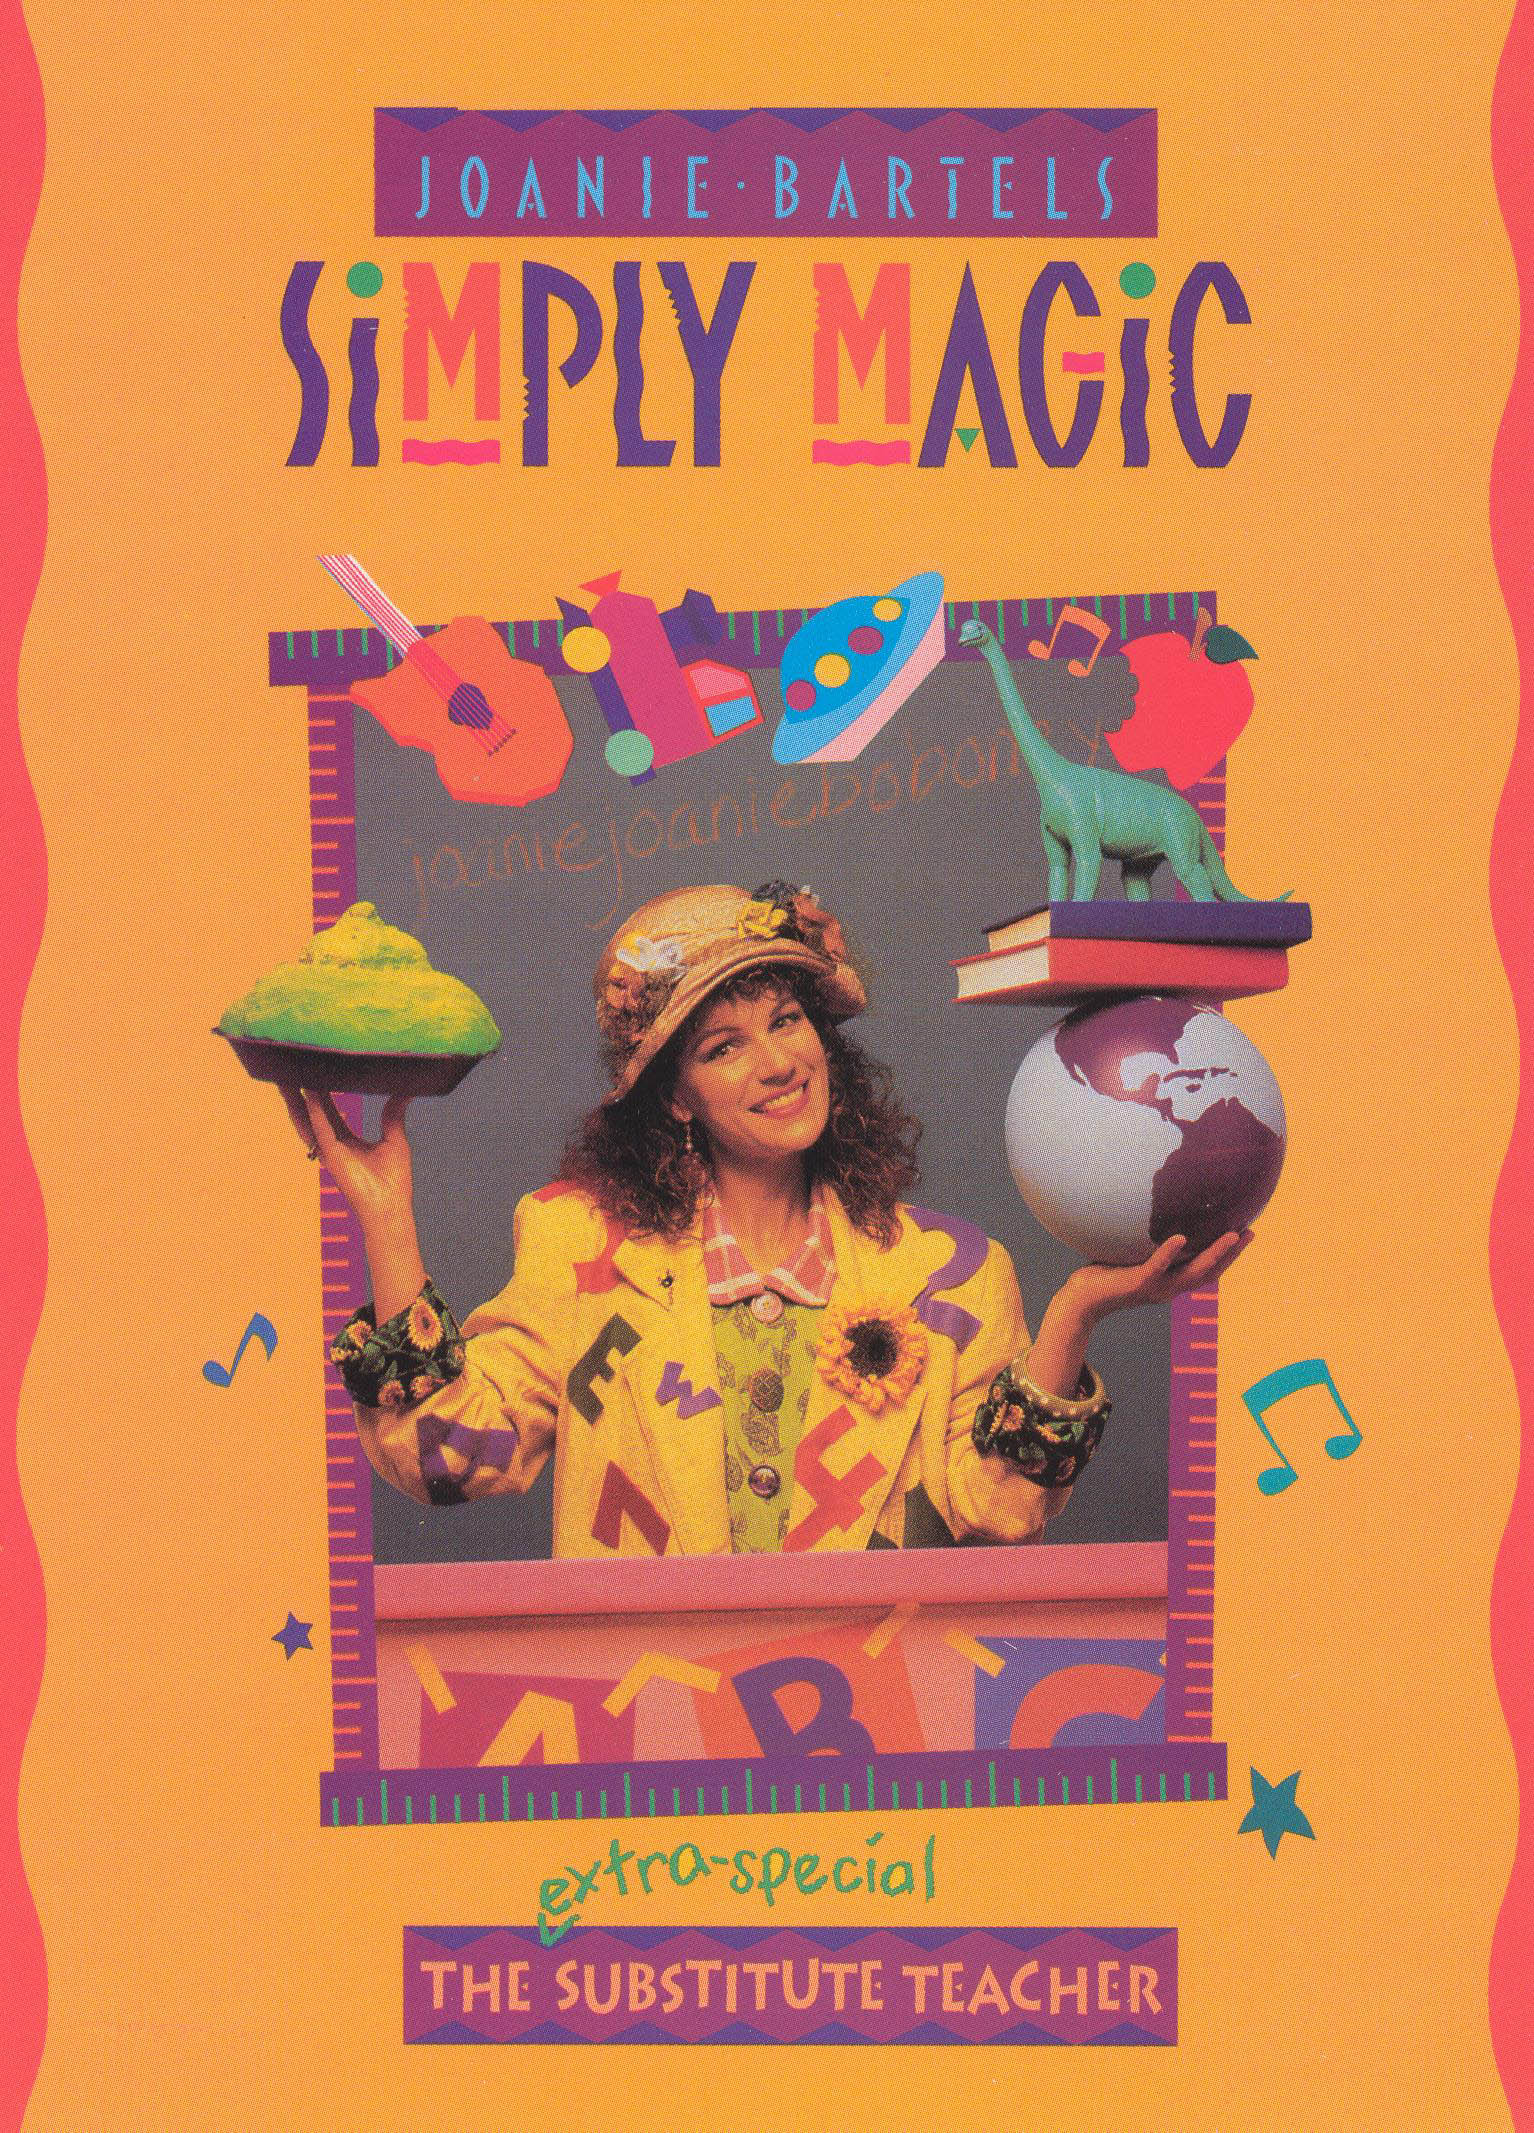 Joanie Bartels: Simply Magic, Episode 2 - The Extra-Special Substitute Teacher